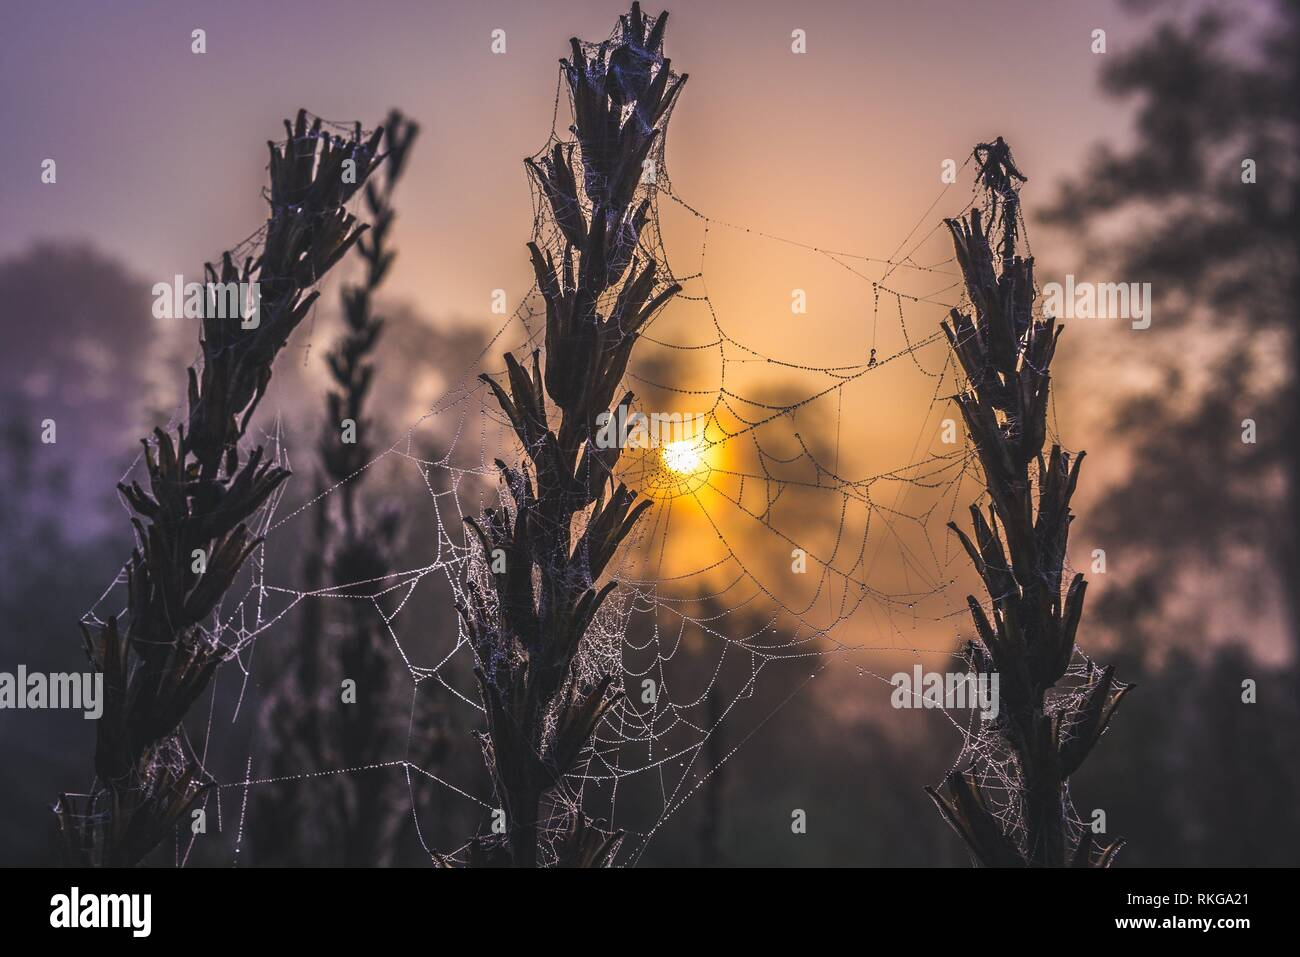 Spider's web on a meadow in Sochaczew County on the edge of Kampinos Forest, large forests complex in Masovian Voivodeship of Poland. - Stock Image